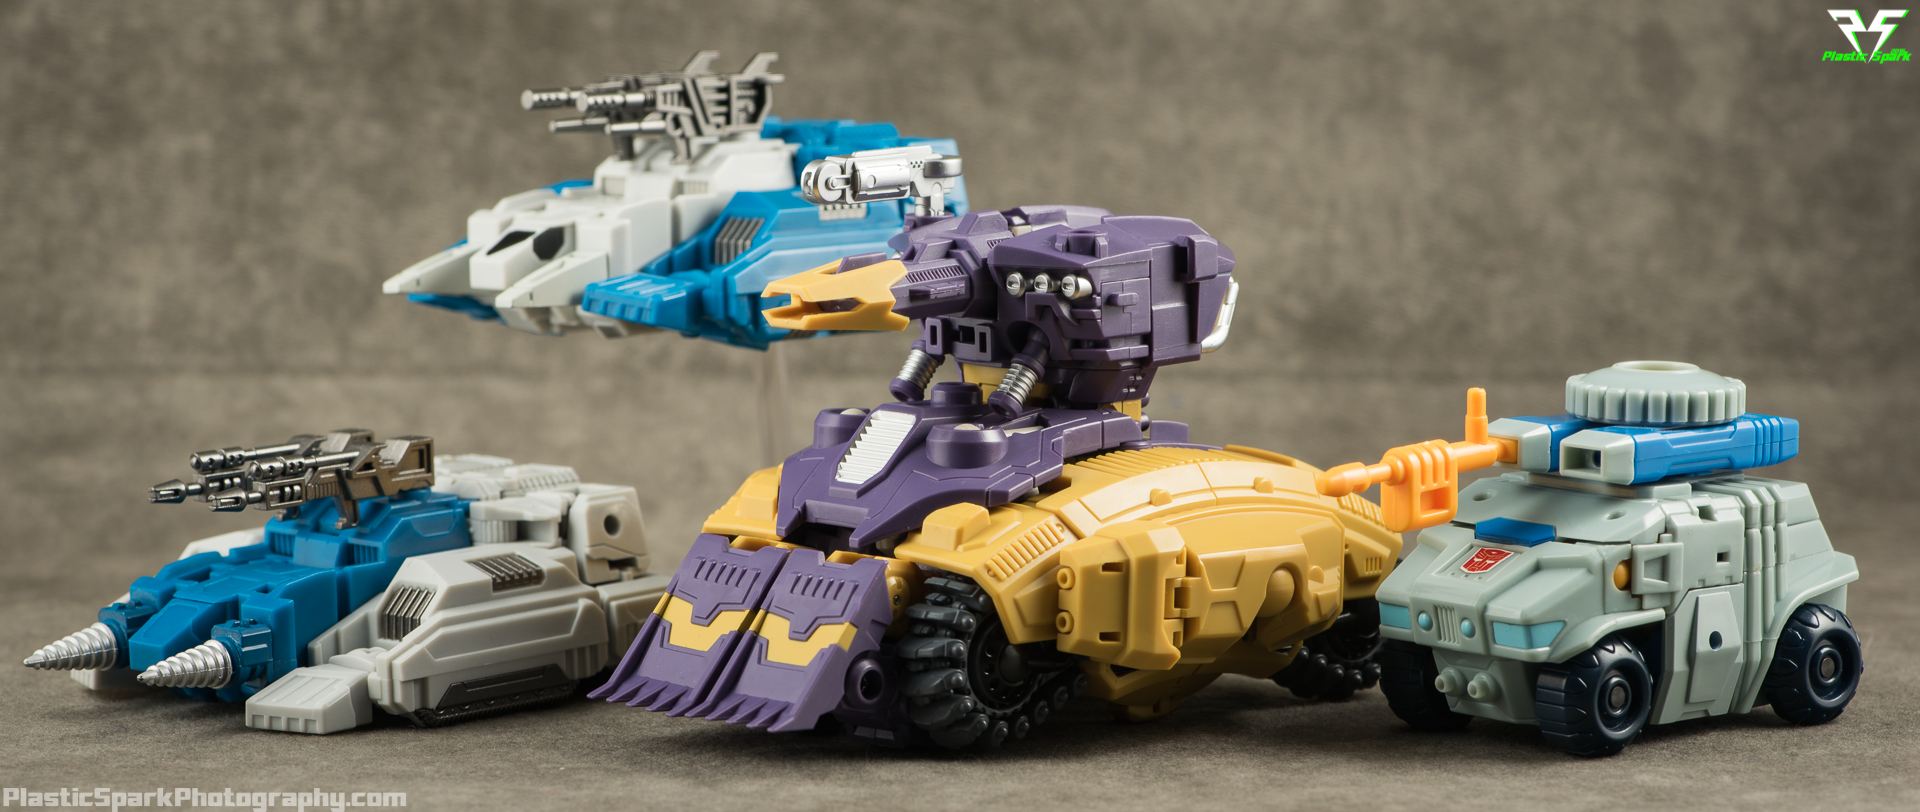 Mastermind-Creations-Spartan-(6-of-27).png